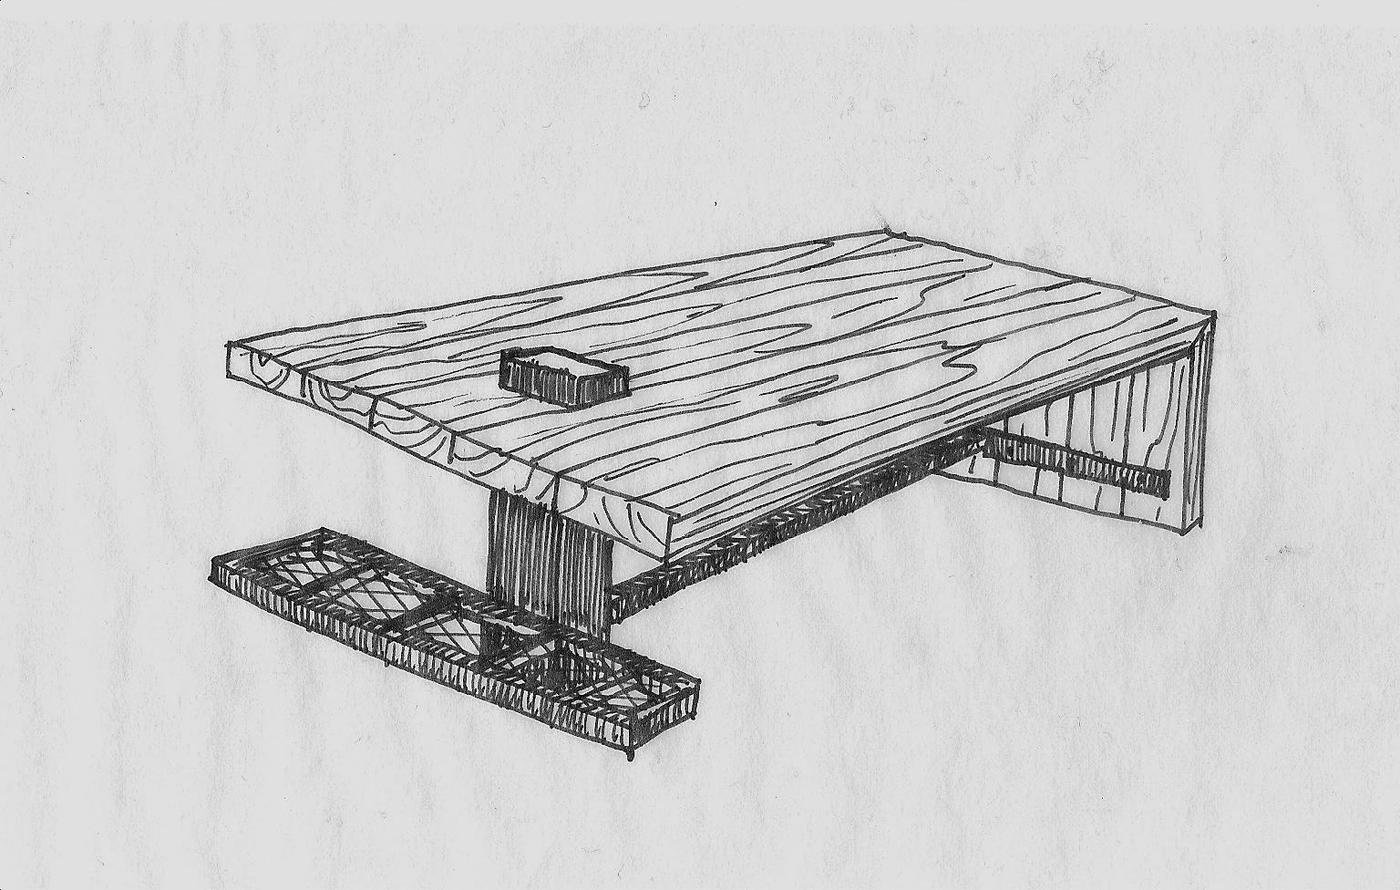 Dining table 1 by tyson schrock at coroflot design phase sketches and model of dining table 1 geotapseo Gallery